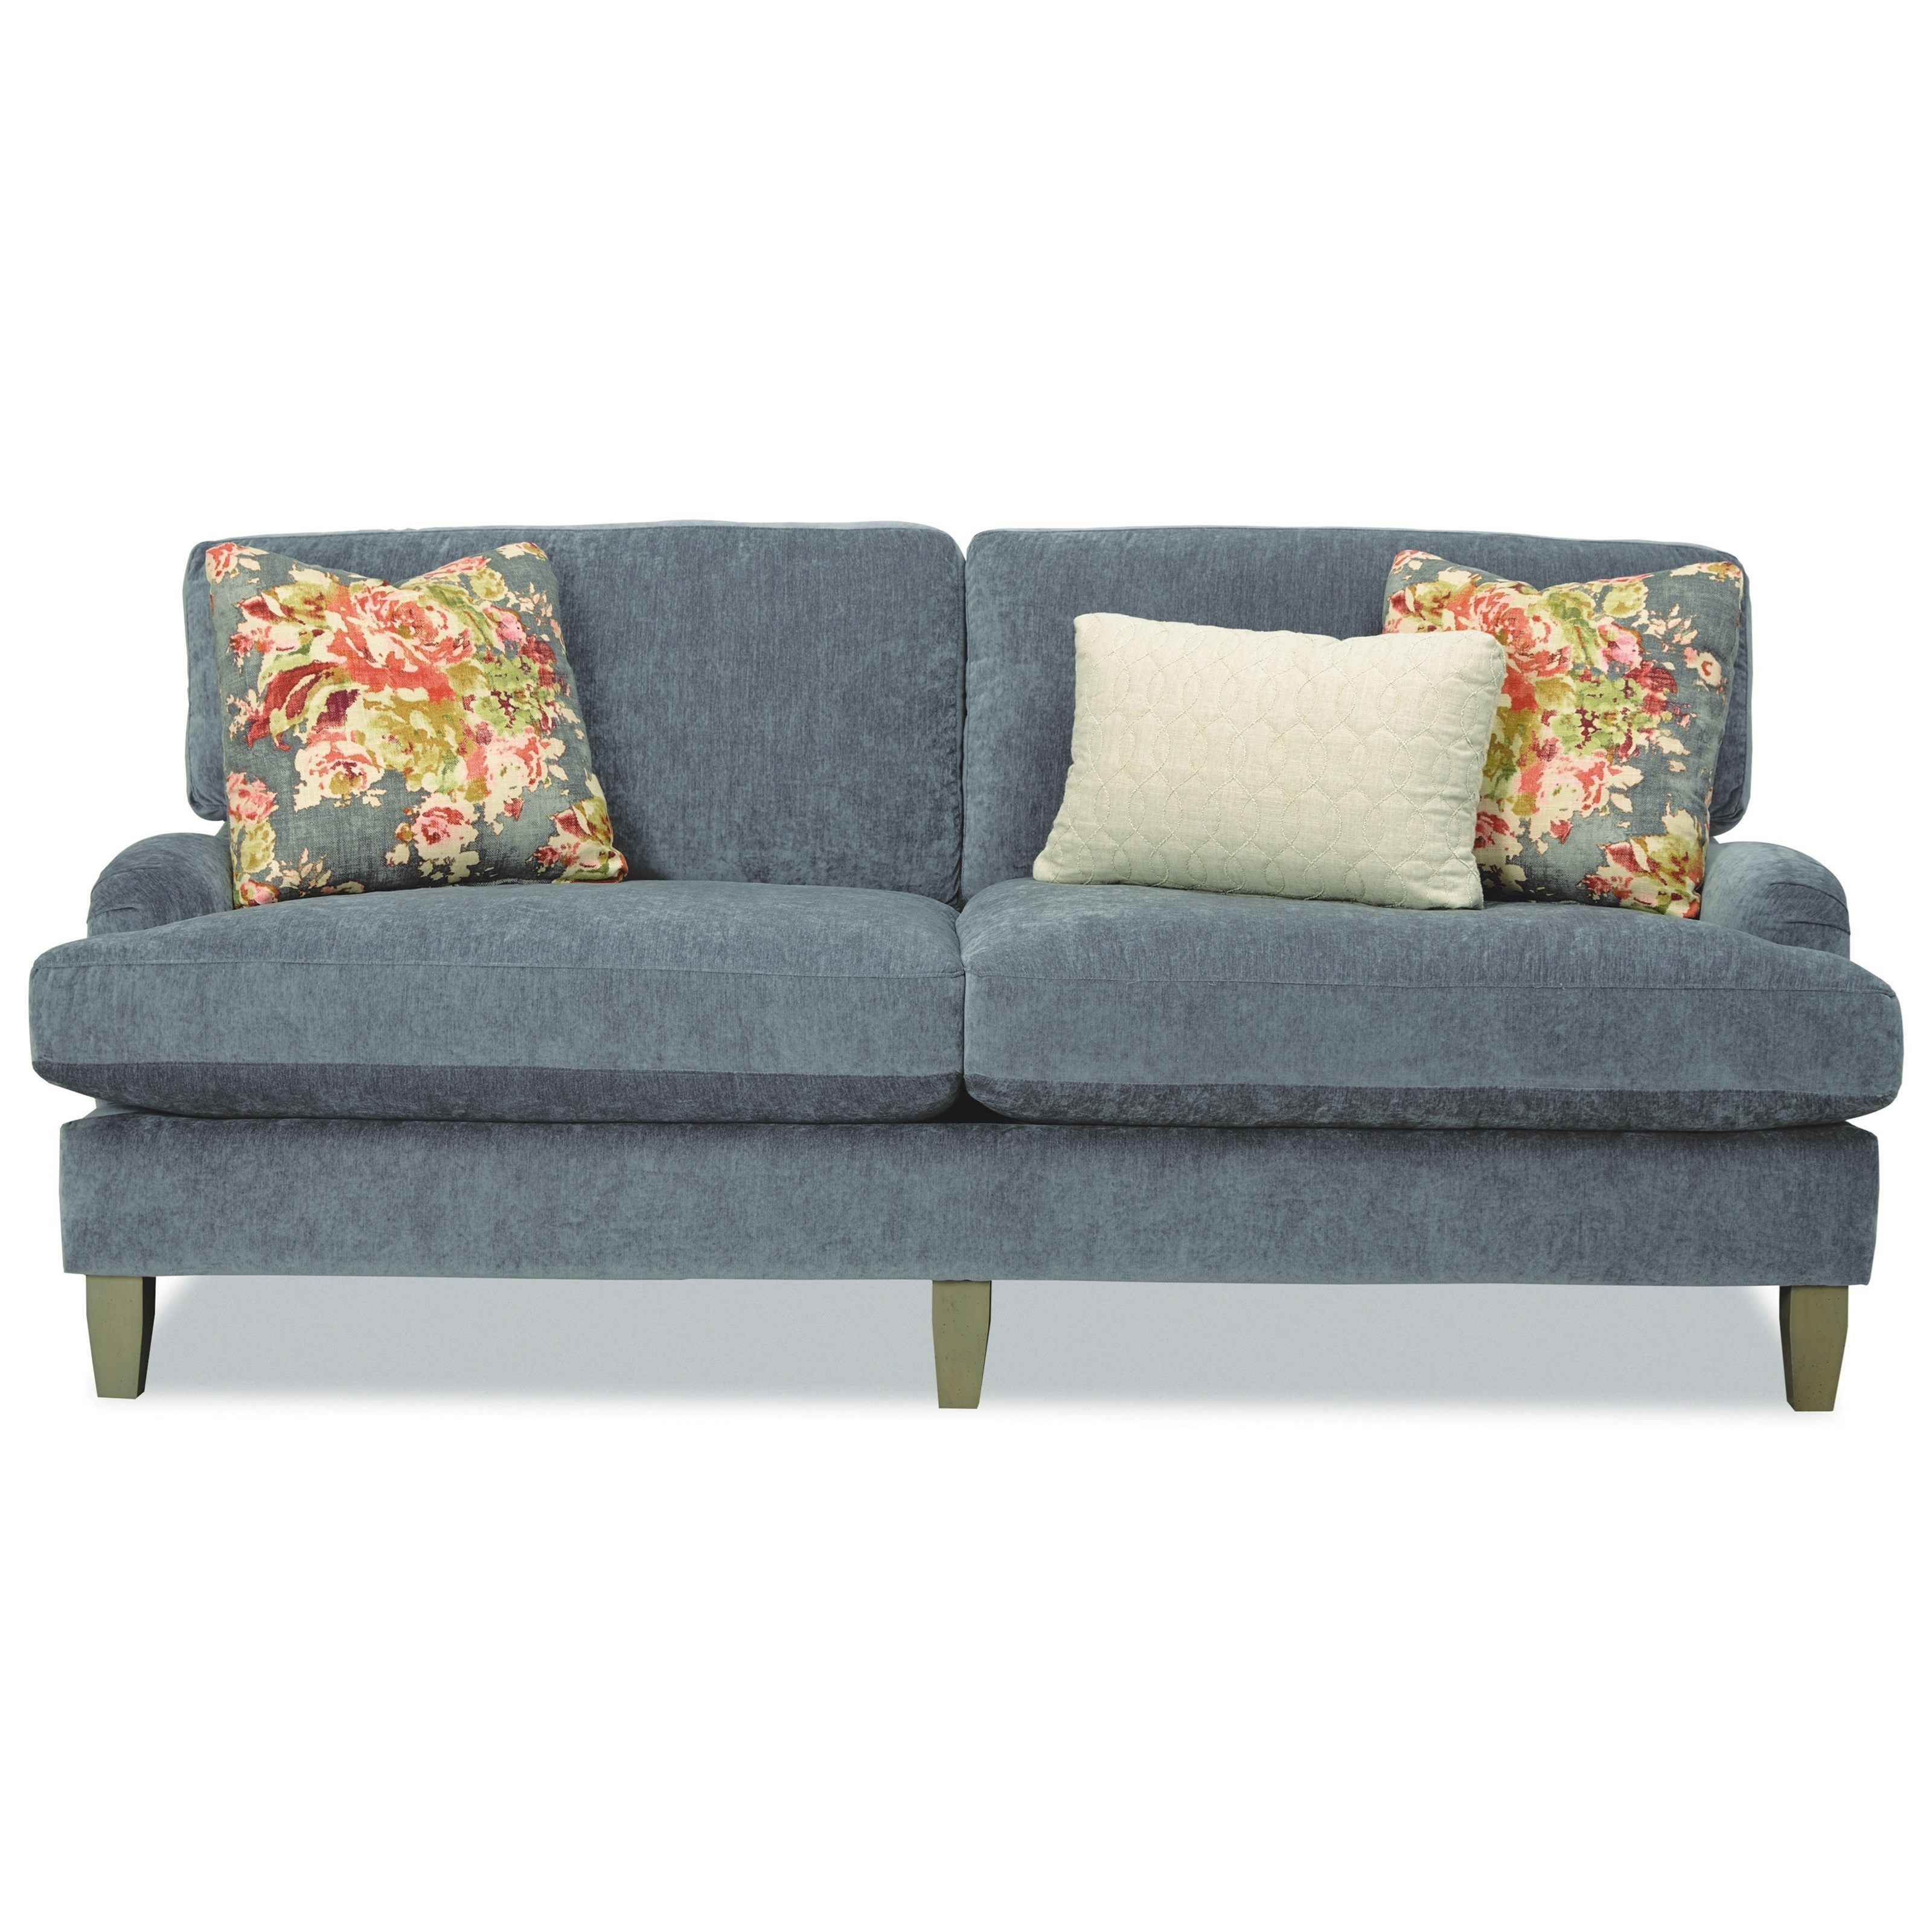 standard sofa cushion size how to turn a twin bed into pillow sizes for throw google search